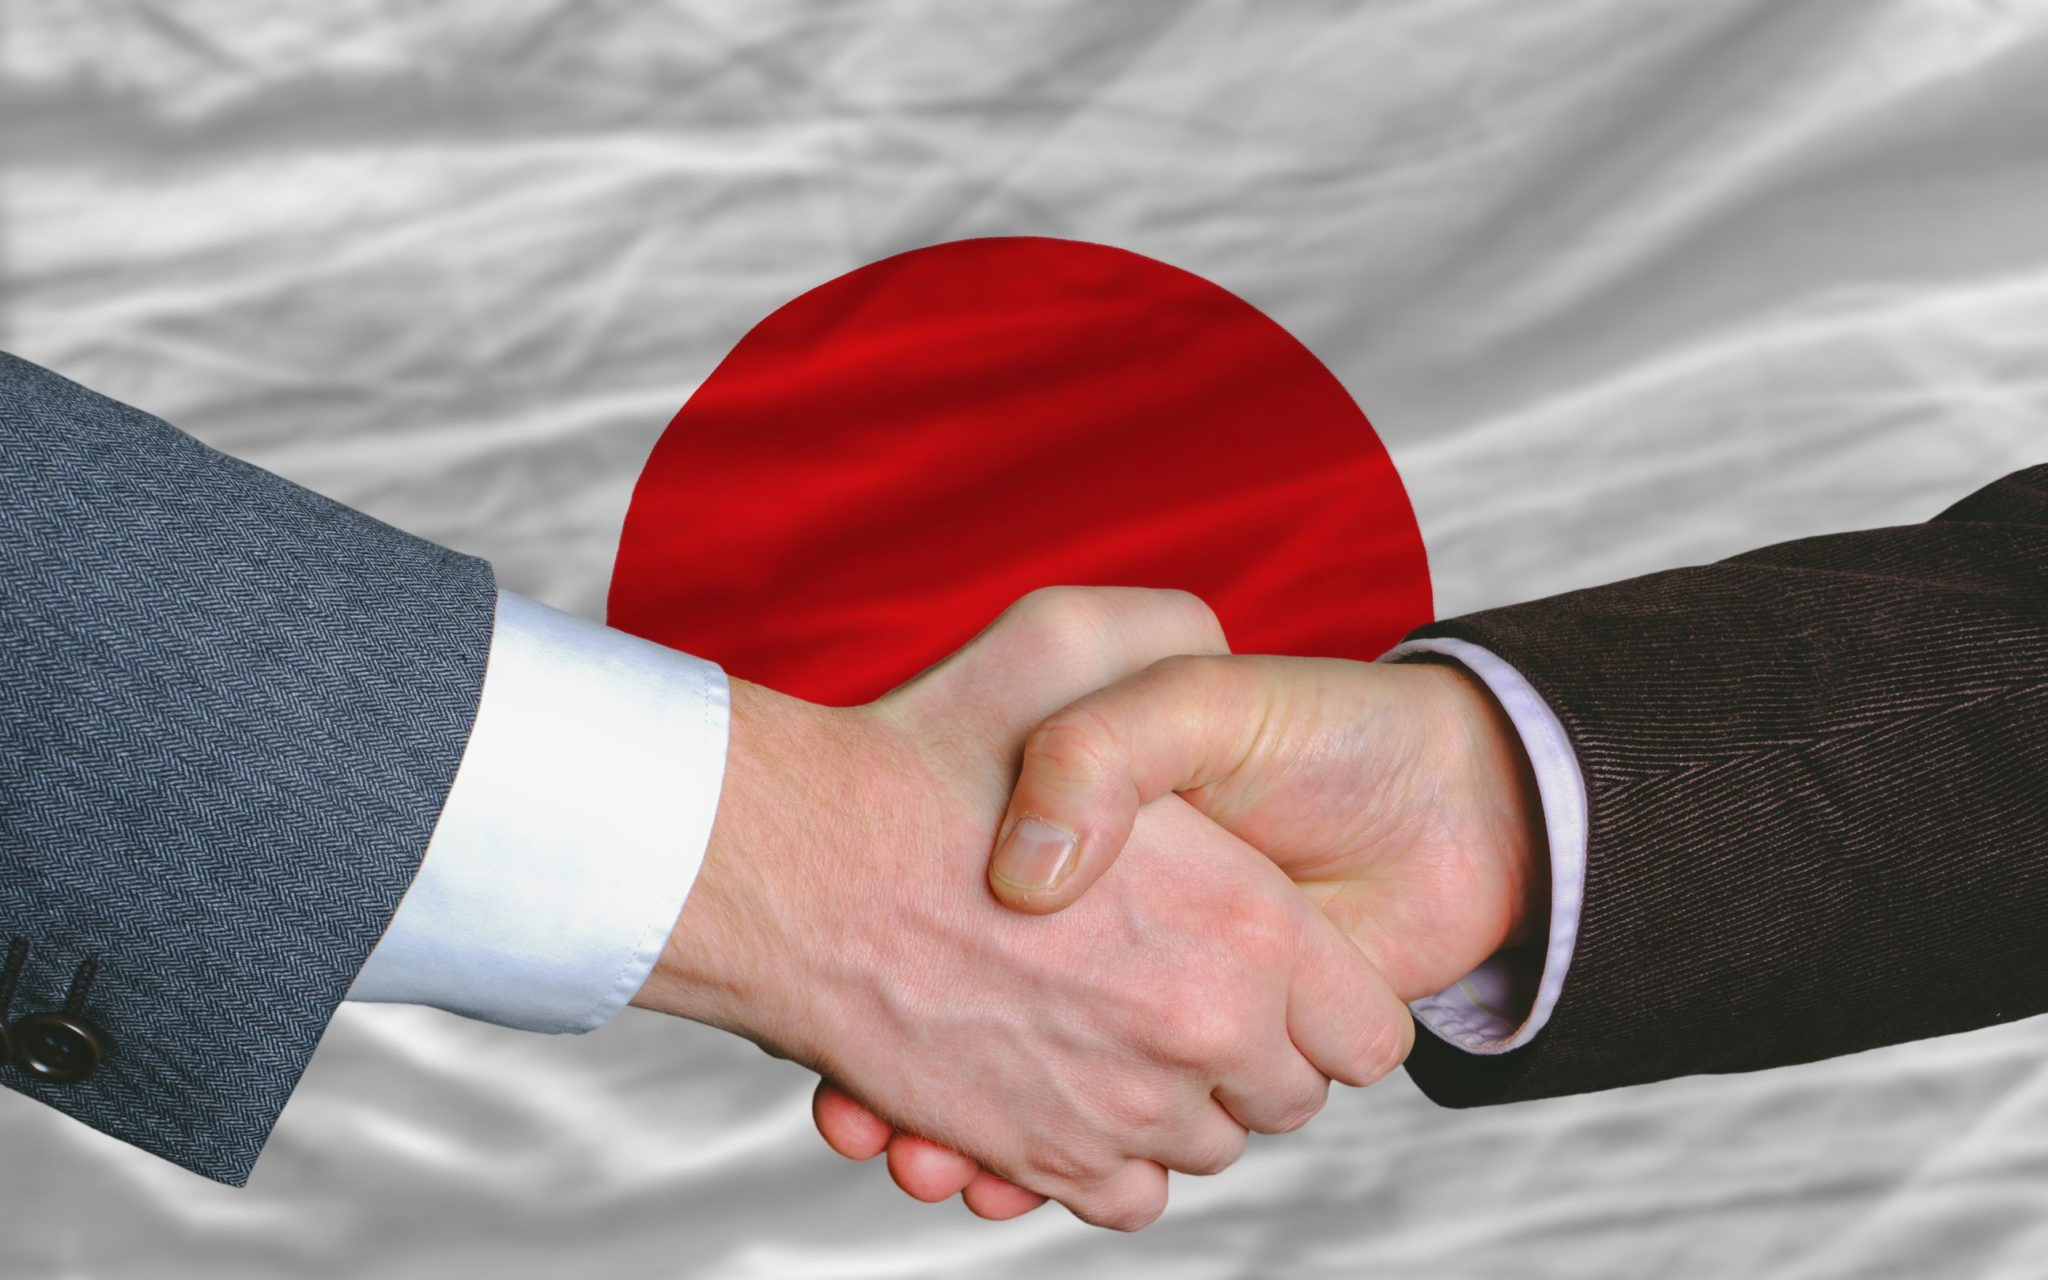 THE GLOBAL PANDEMIC ACCELERATED A WAVE OF INNOVATION-FOCUSED CANADIAN FOREIGN DIRECT INVESTMENT OPPORTUNITIES WITH JAPAN